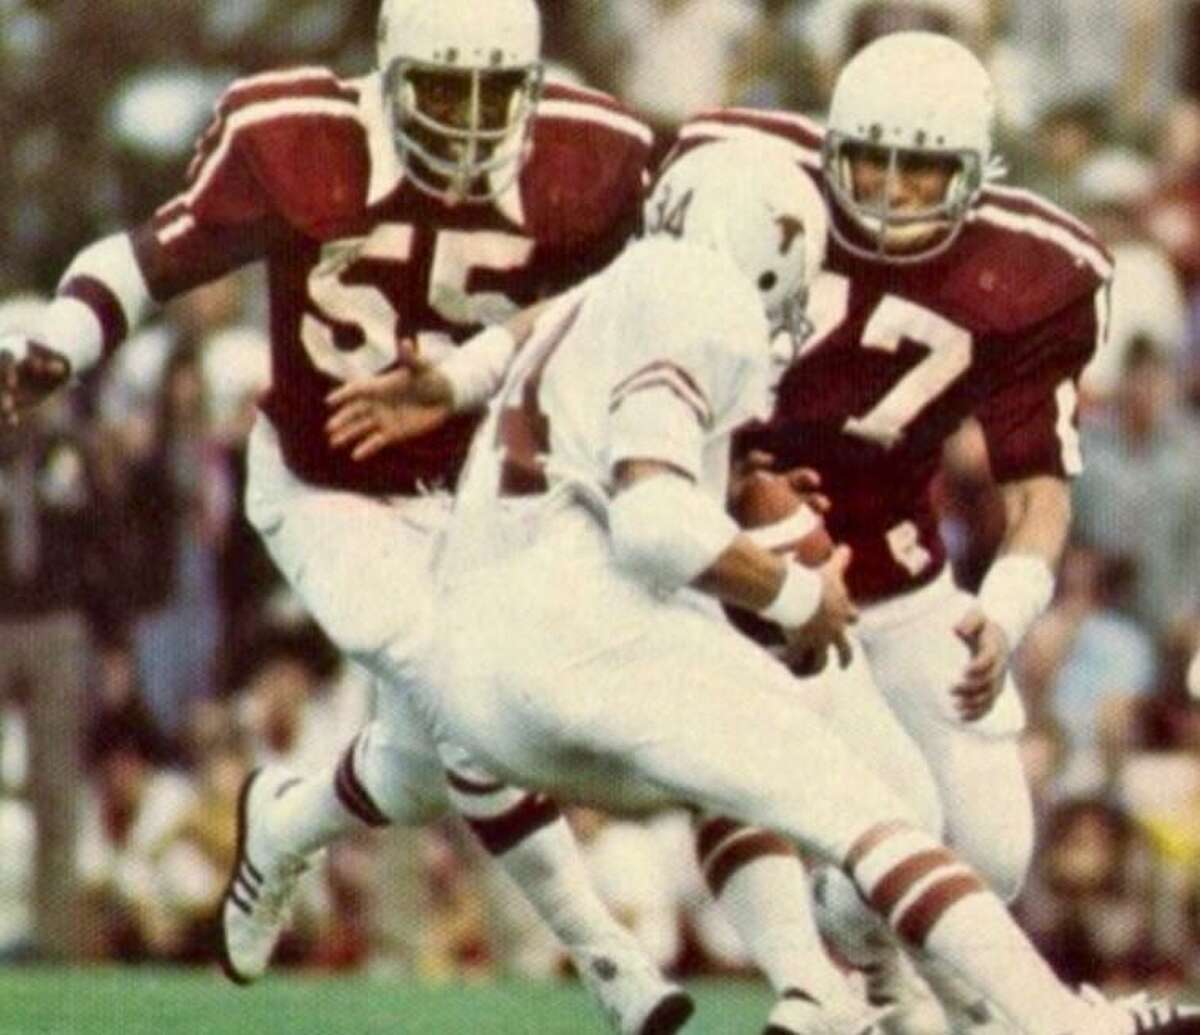 Beating Texas in 1975 was a big moment for Ed Simonini (77) and the Aggies.